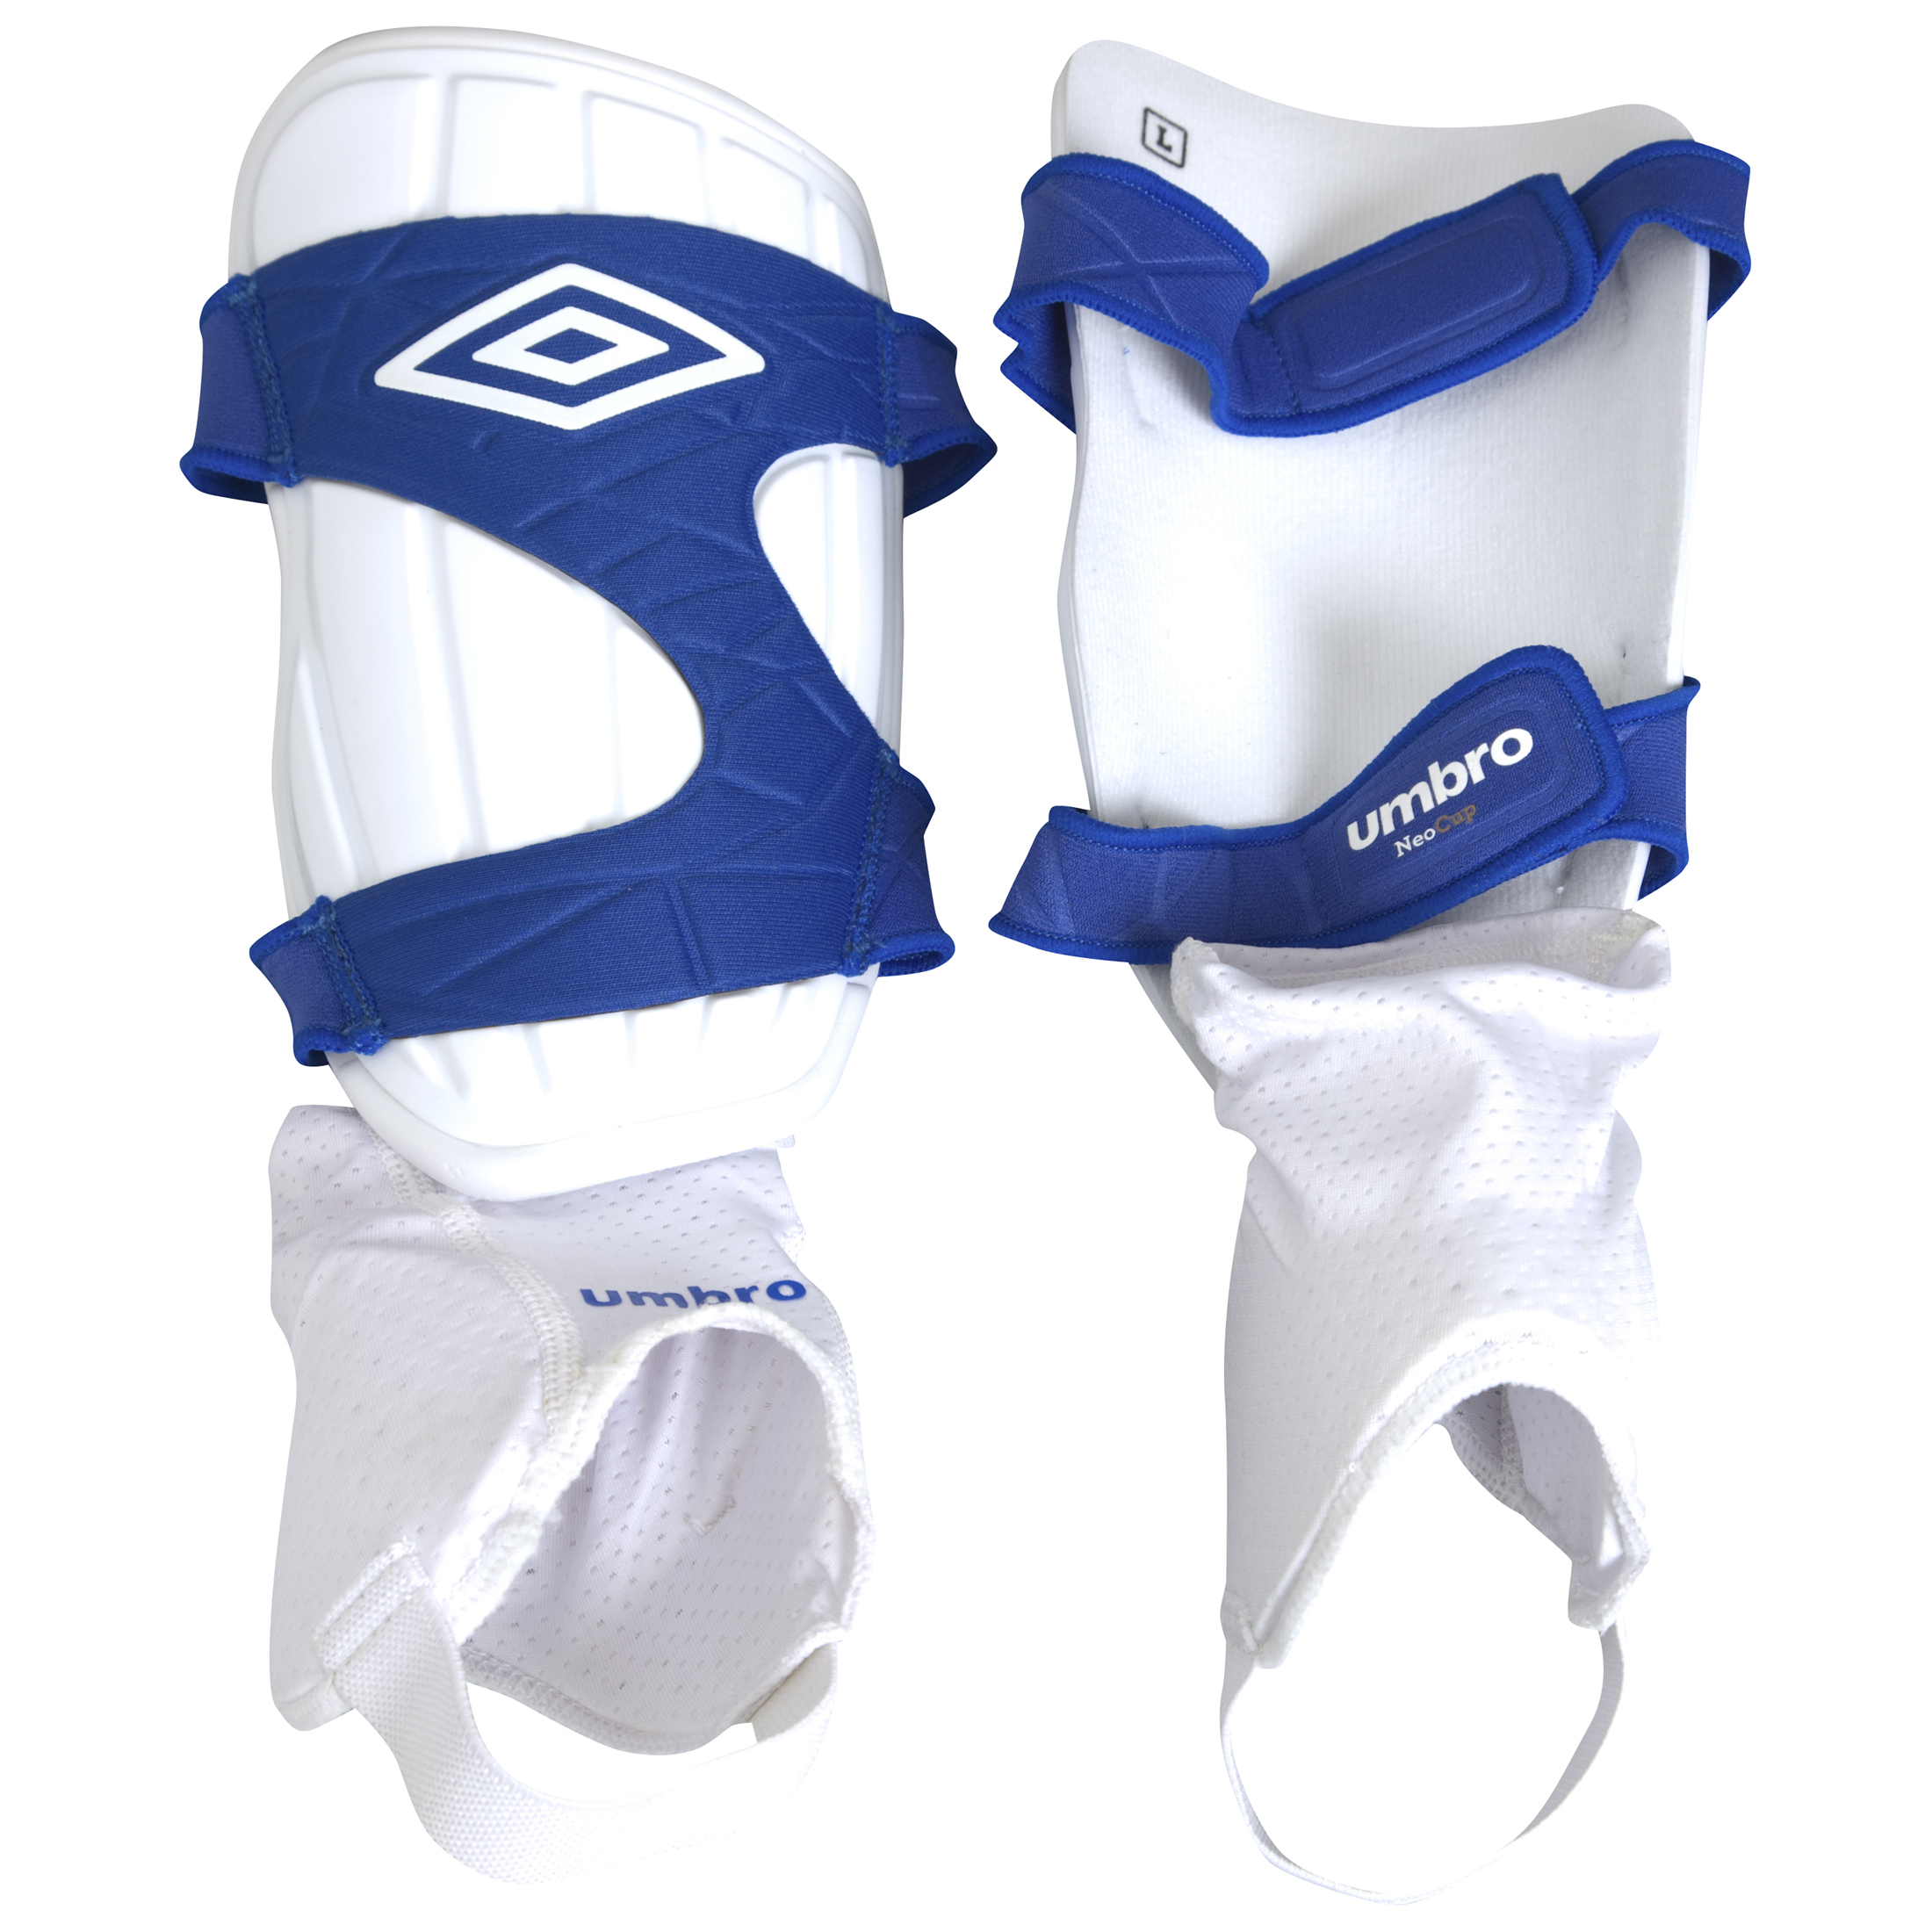 Umbro Cup Shin Guard - White/Blue